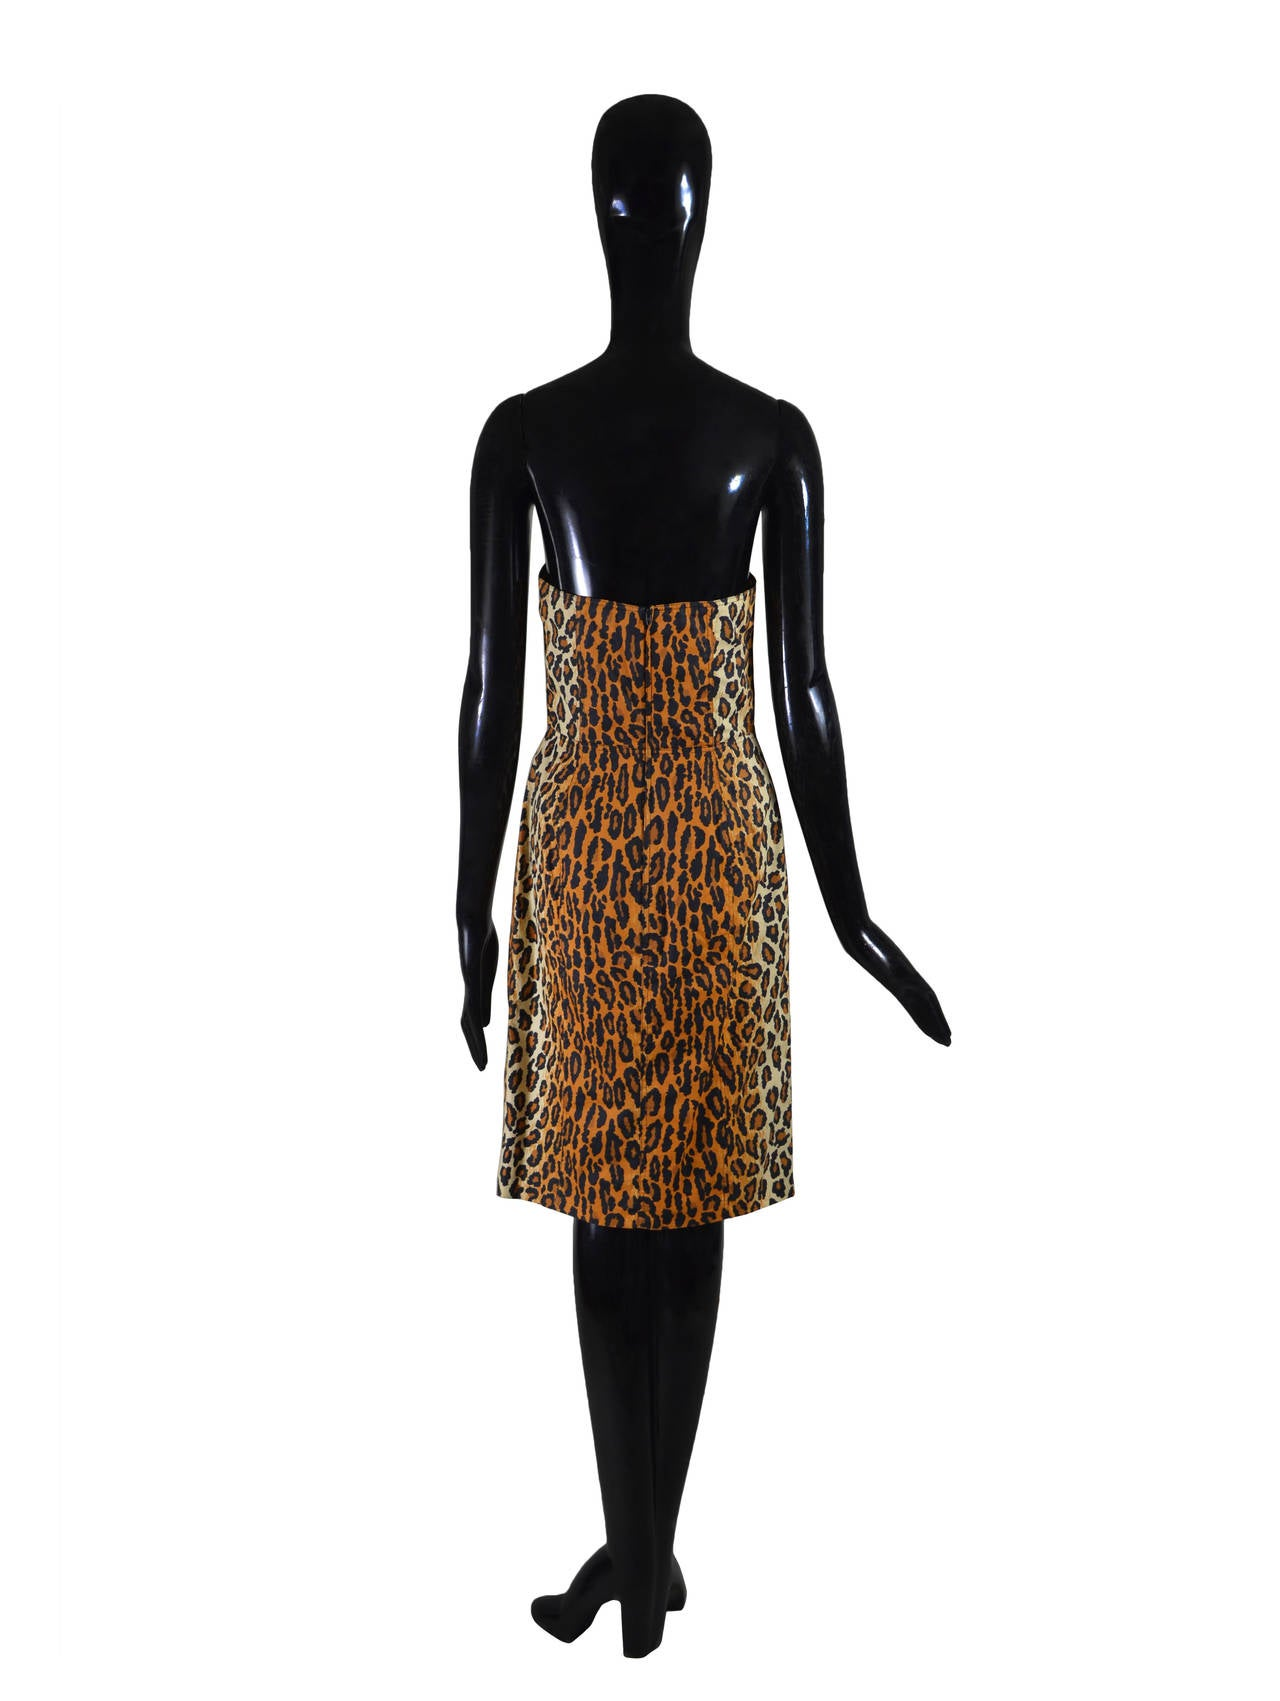 1989 Patrick Kelly Cocktail Dress In Good Condition For Sale In Palm Beach, FL